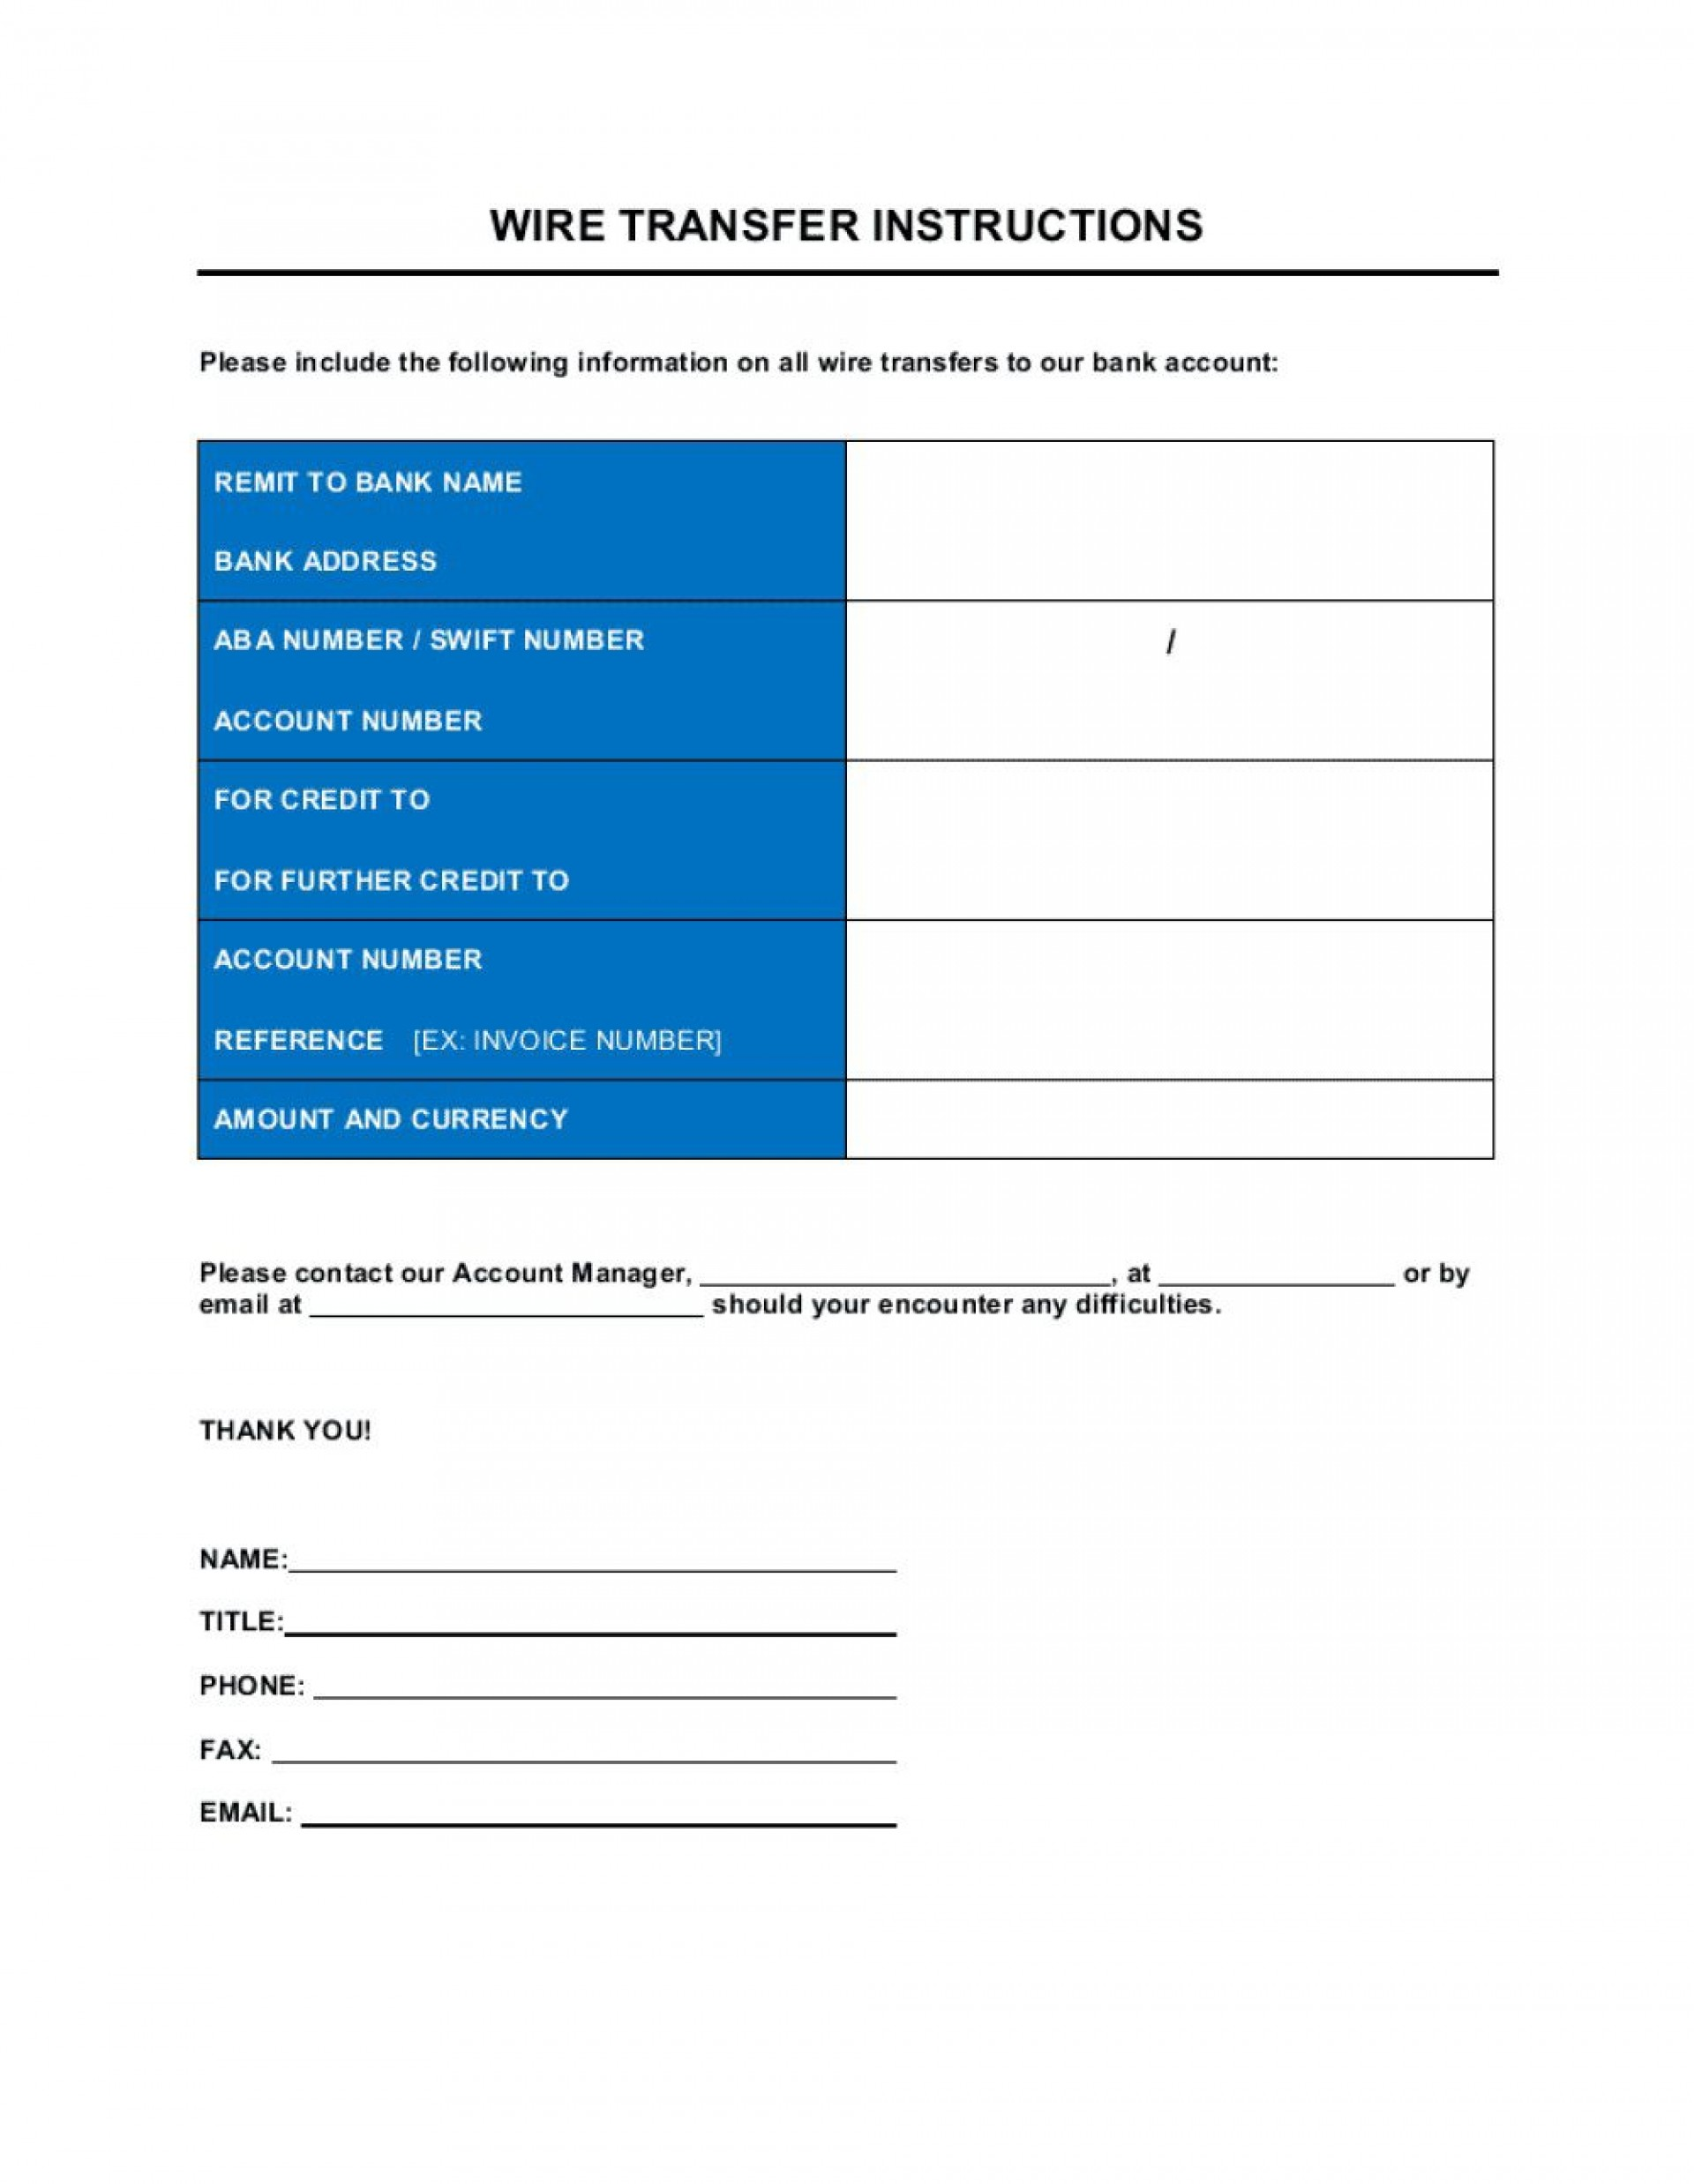 009 Staggering Wire Transfer Instruction Template Idea  International Chase1920